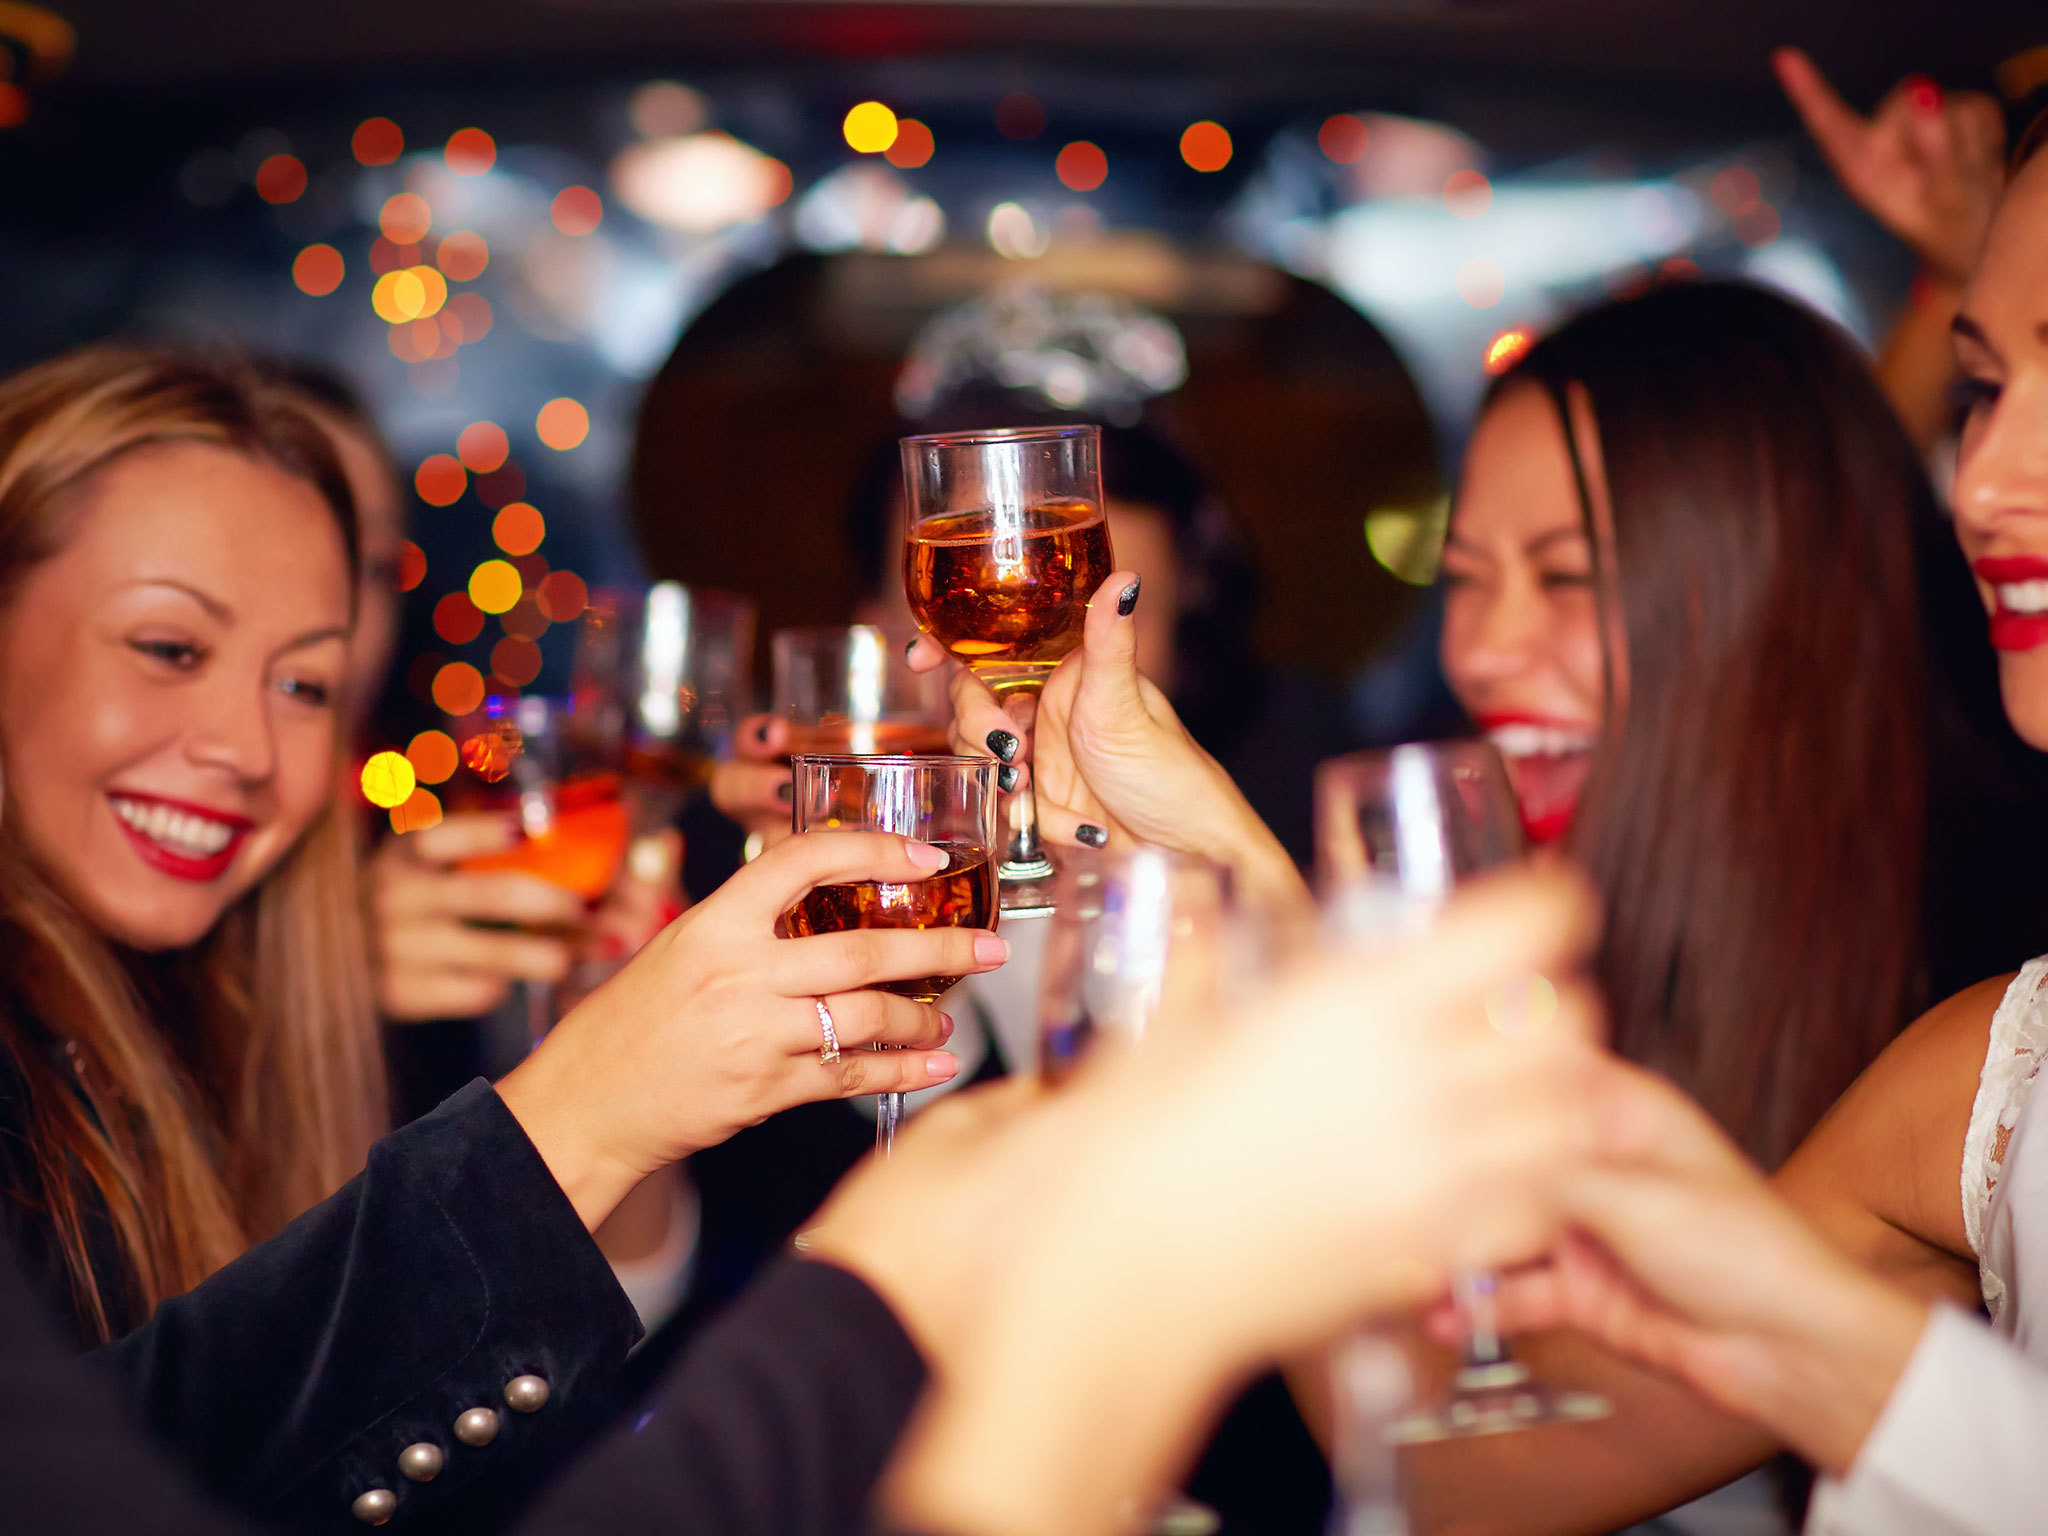 Hen do venues and nights out in London